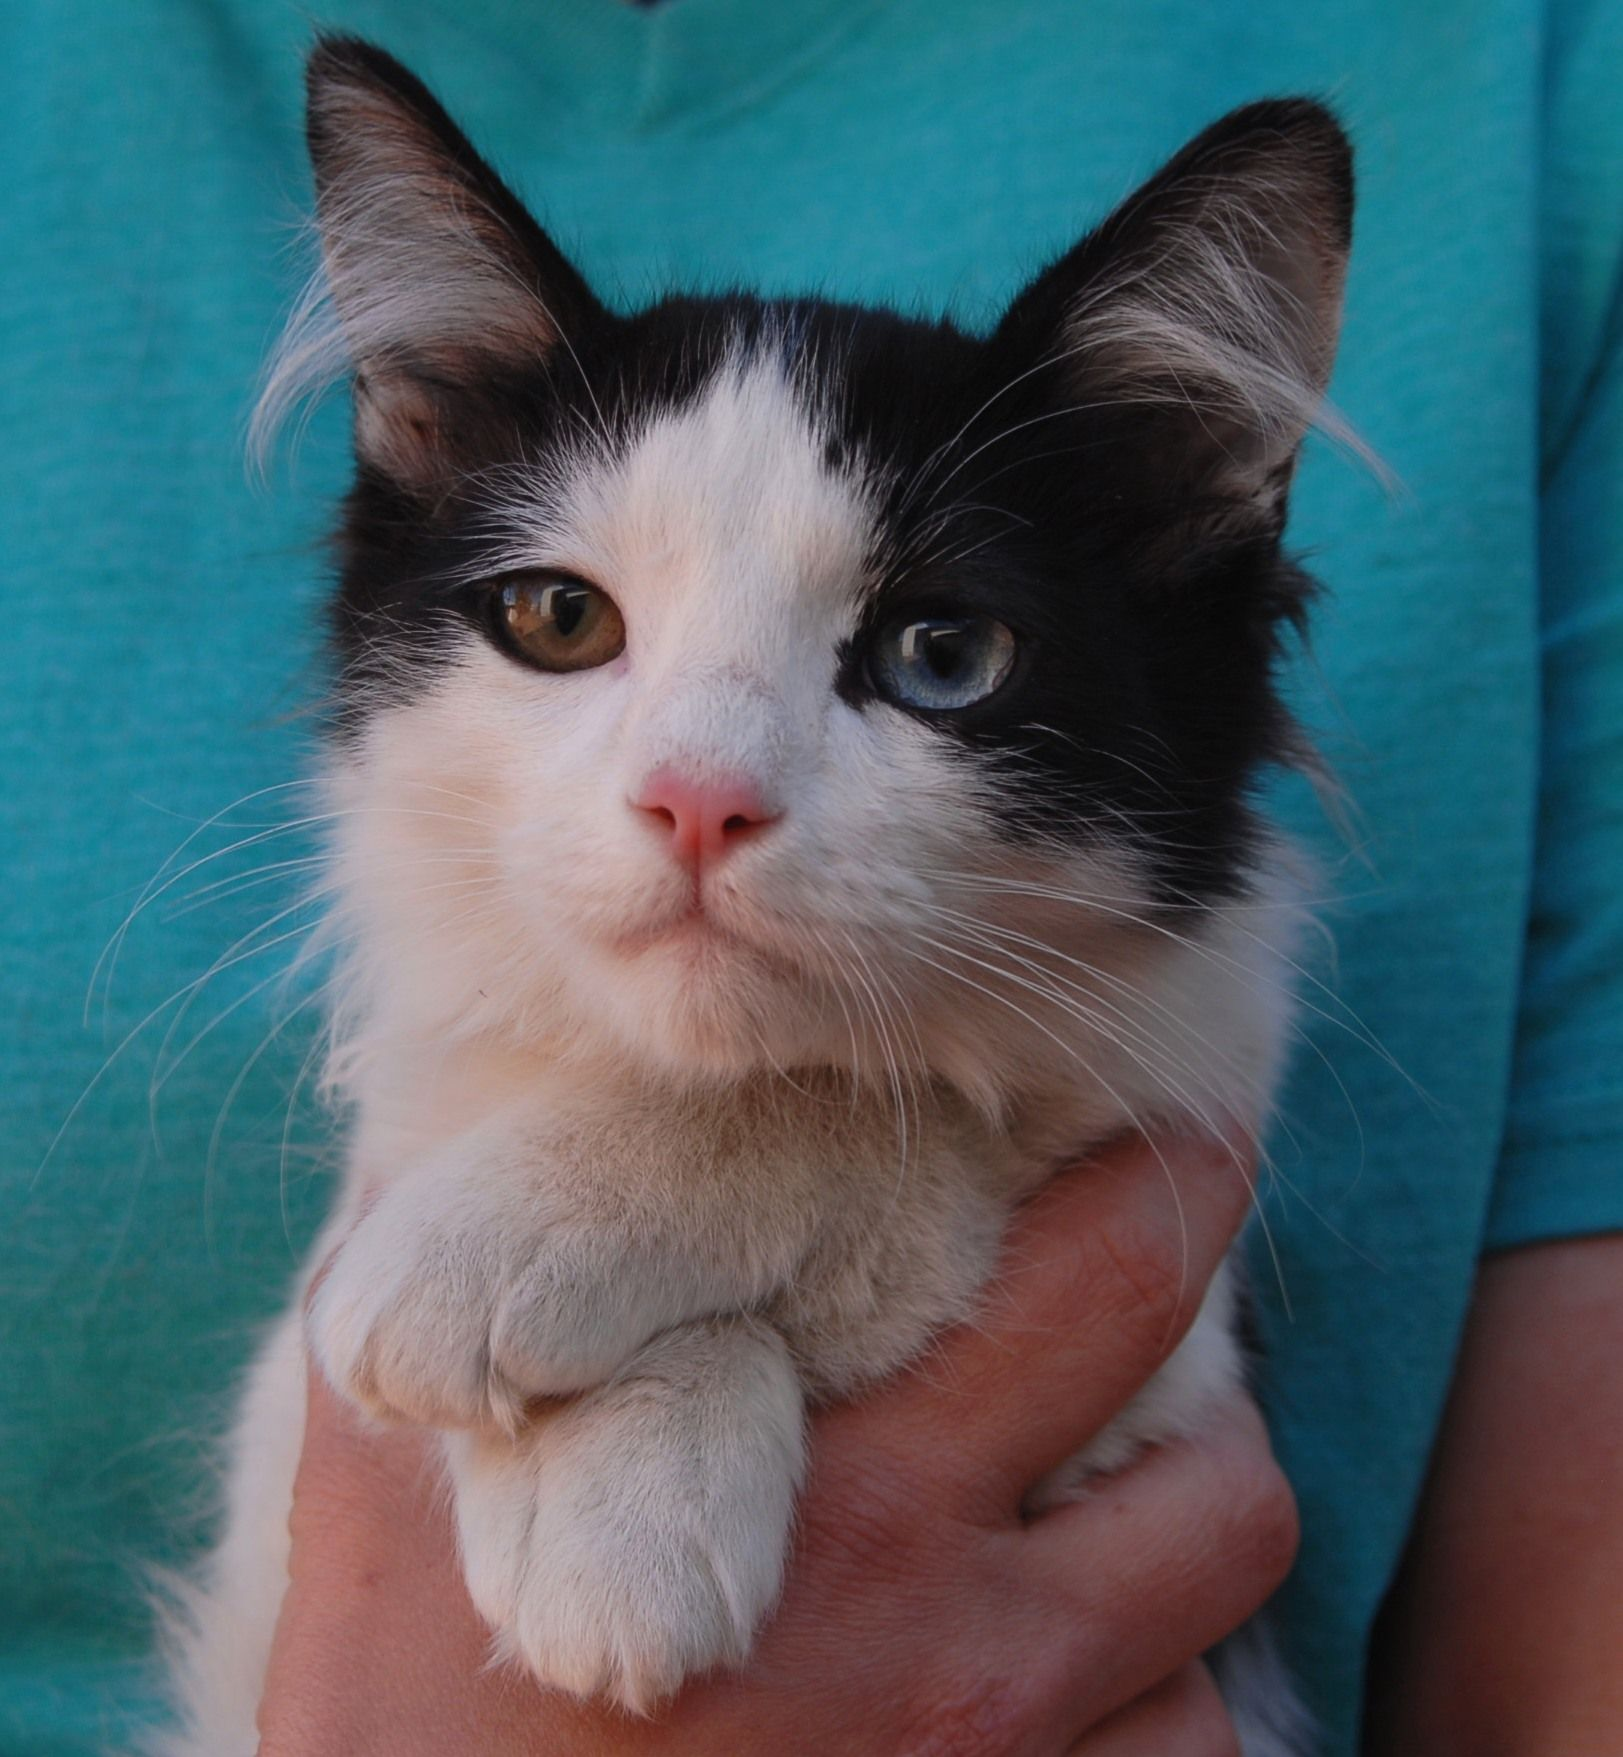 Logan is an intelligent discerning baby boy ready for adoption at